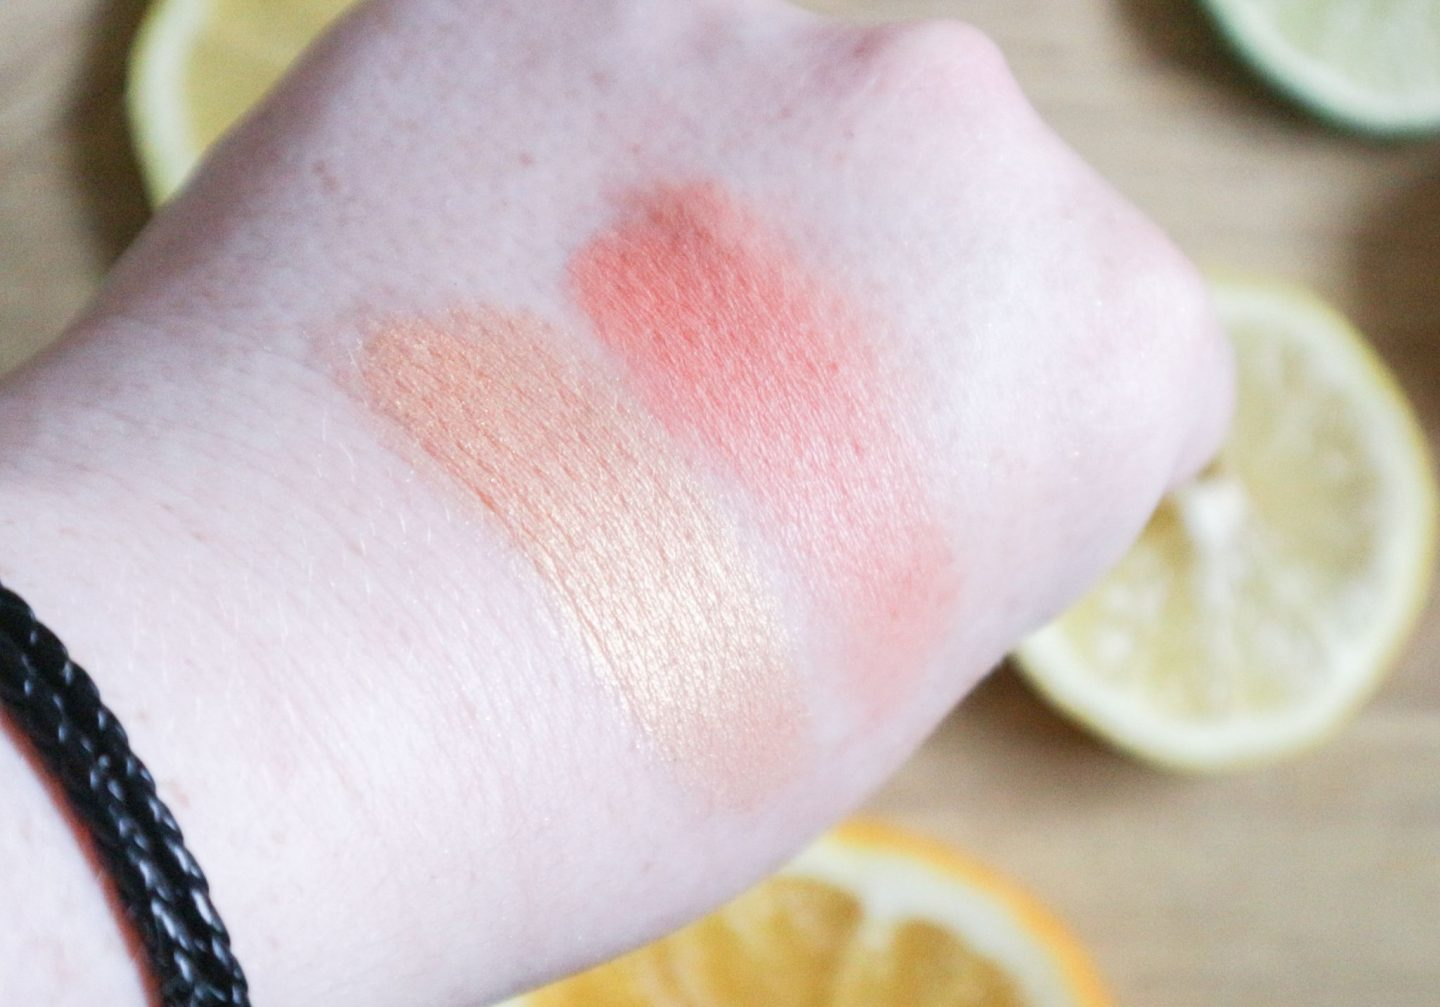 Too Faced Tutti Fruit Fruit Cocktails Strobing Blush Duo in Apricot in the Act swatched